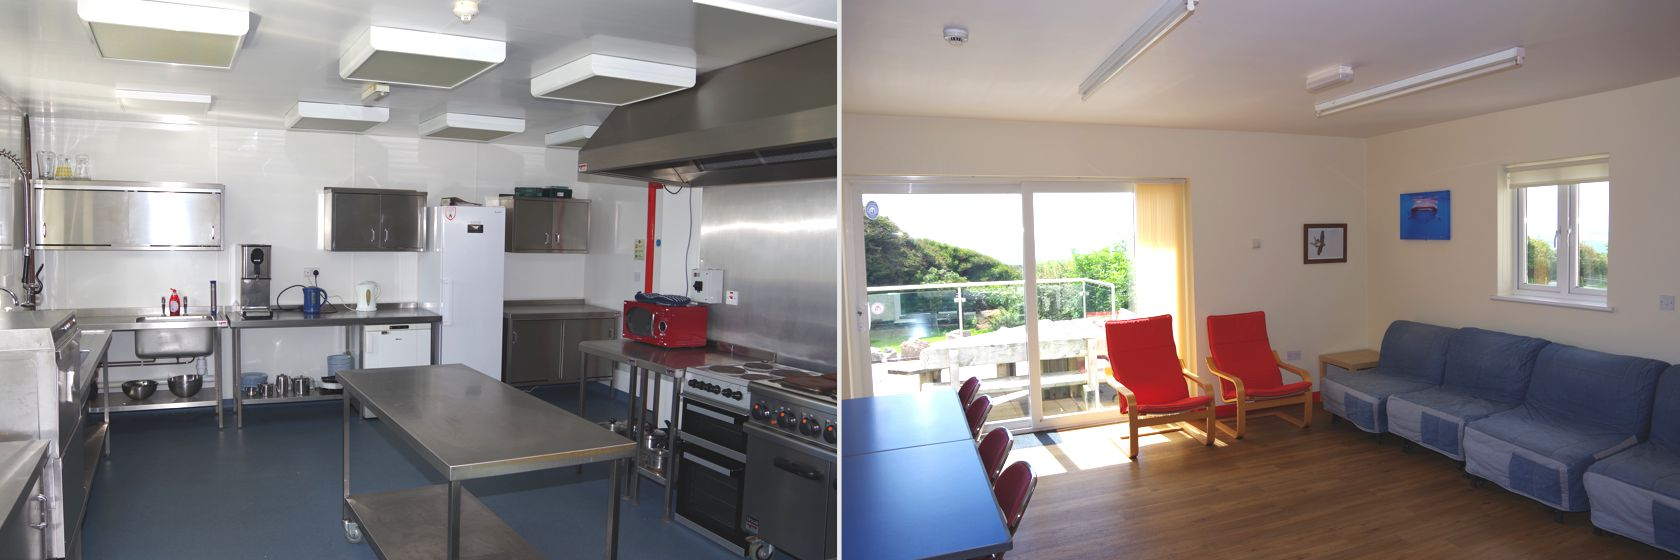 Large kitchen ideal for group self catering accommodation